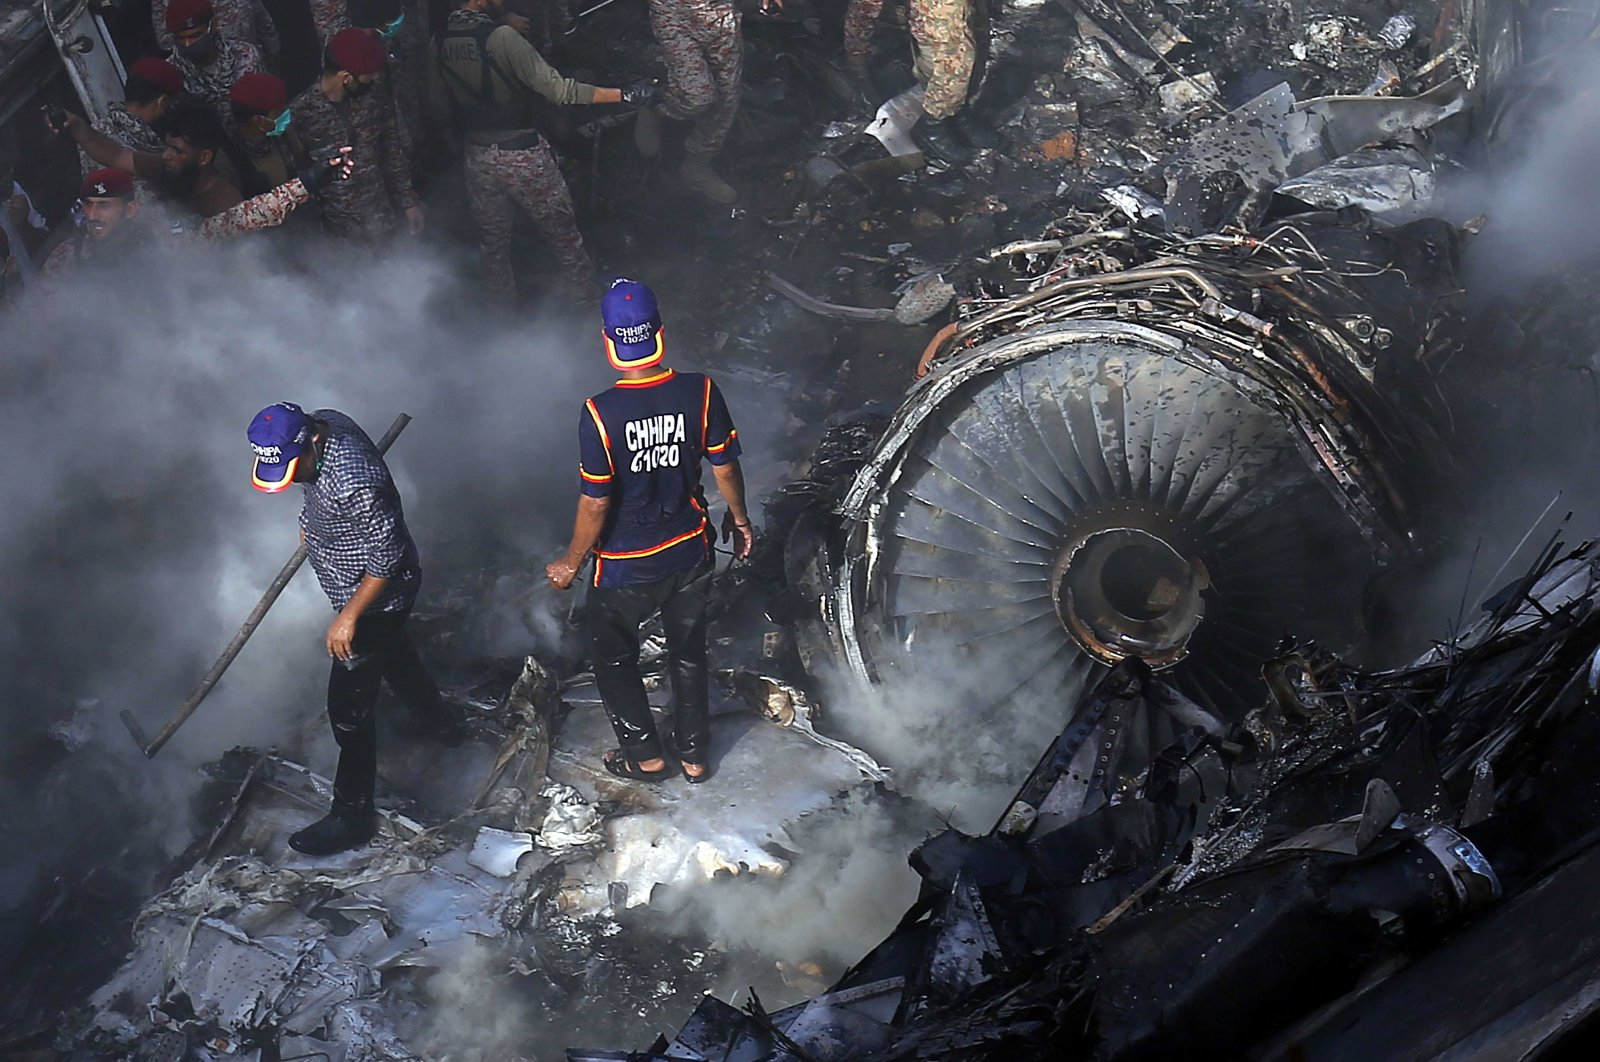 Rescue workers search for the bodies or survivors amid the wreckage of the passenger plane of state-run Pakistan International Airlines, after it crashed on a residential colony, in Karachi, Pakistan, 22 May 2020. (EPA)